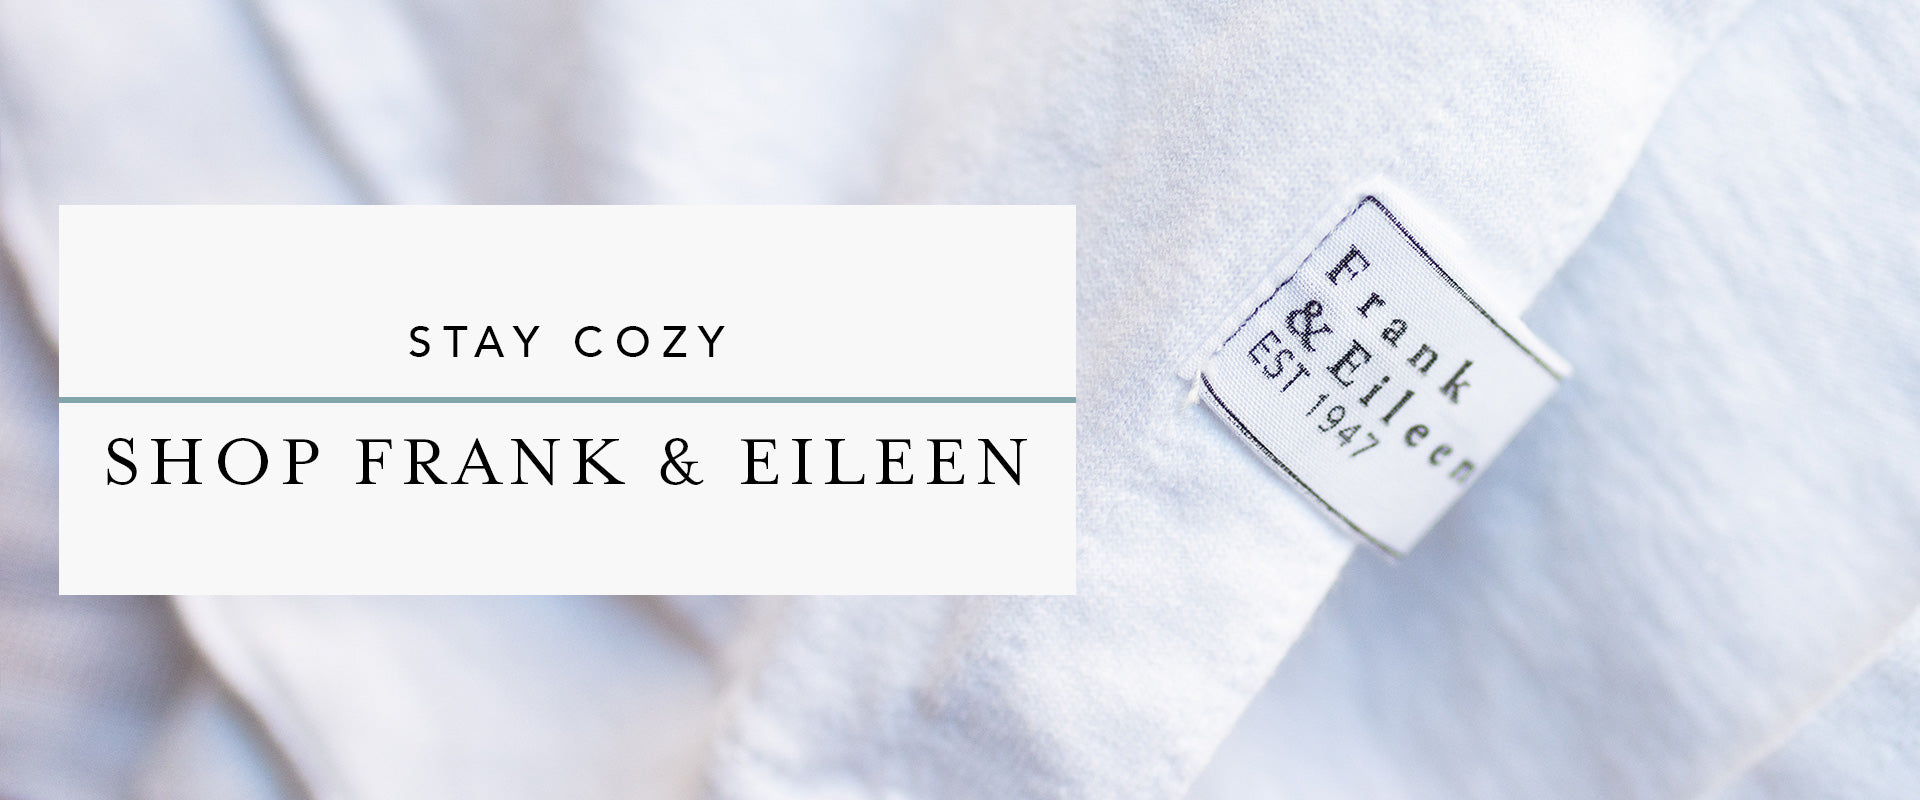 Stay Cozy with Shirts from Frank & Eileen